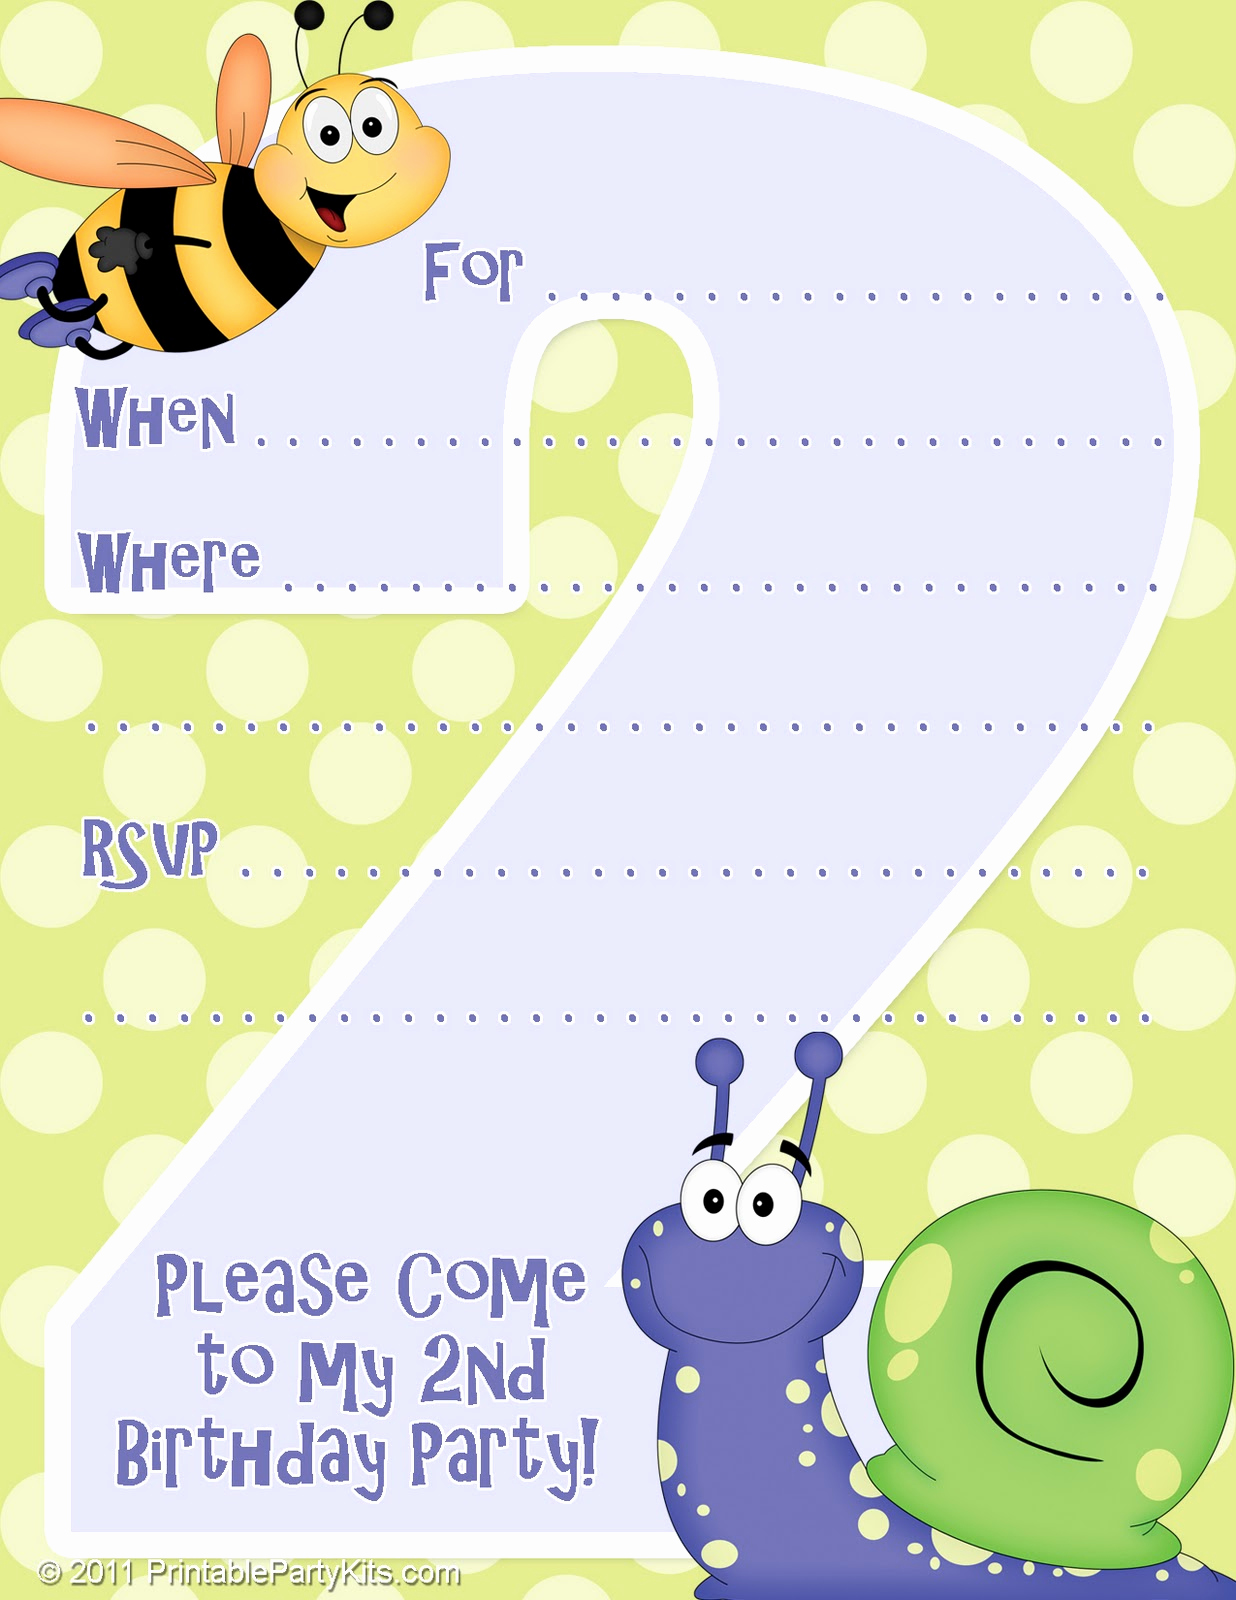 Free Birthday Party Invitation Templates Elegant Free Printable Party Invitations Invitation Template for